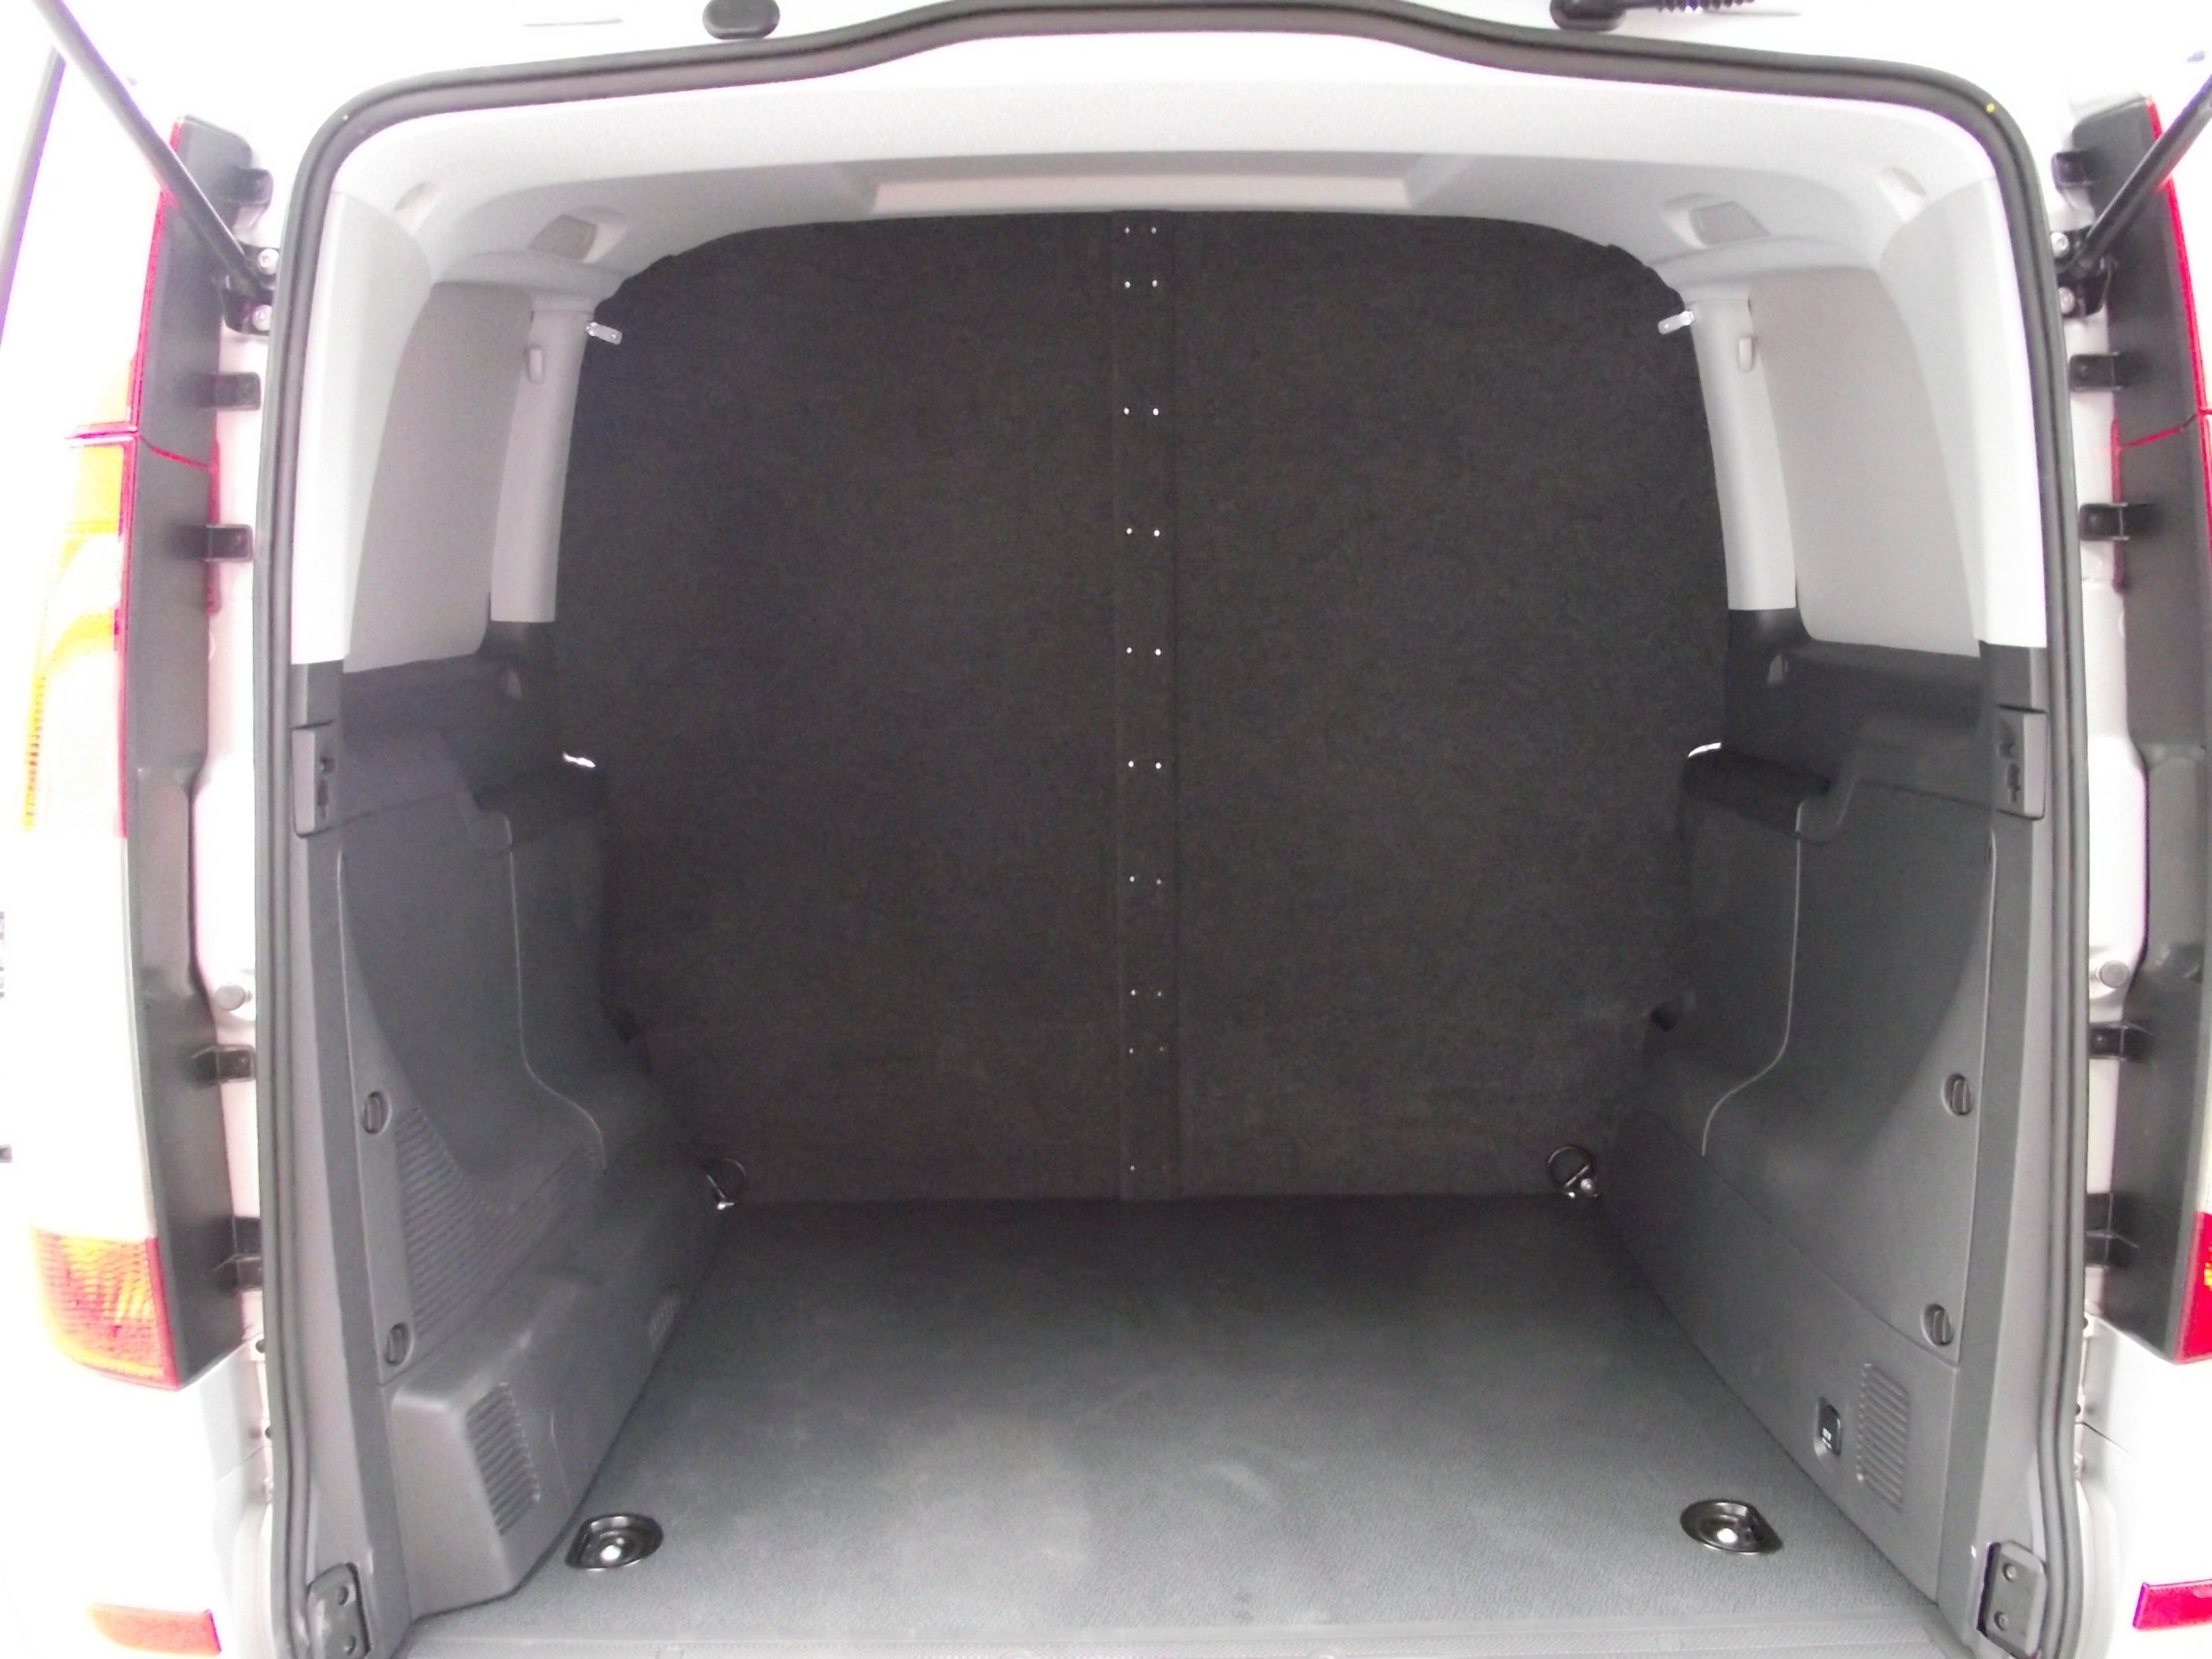 A Carpeted Bulkhead For A Mercedes Vito Bulkheads Pinterest # Muebles Sortimo